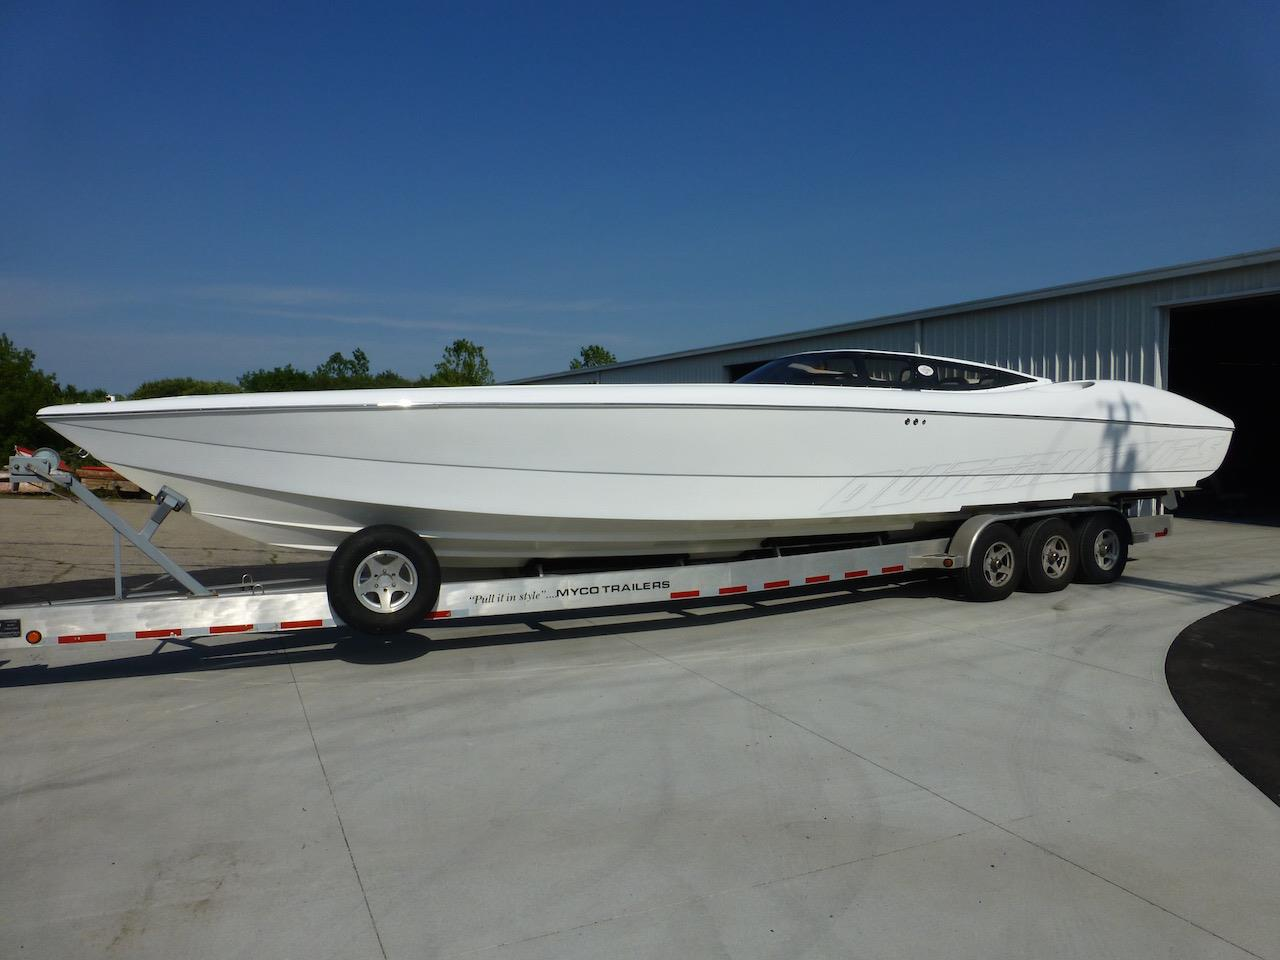 Outerlimits Sportboat Project Complete, with an All-White